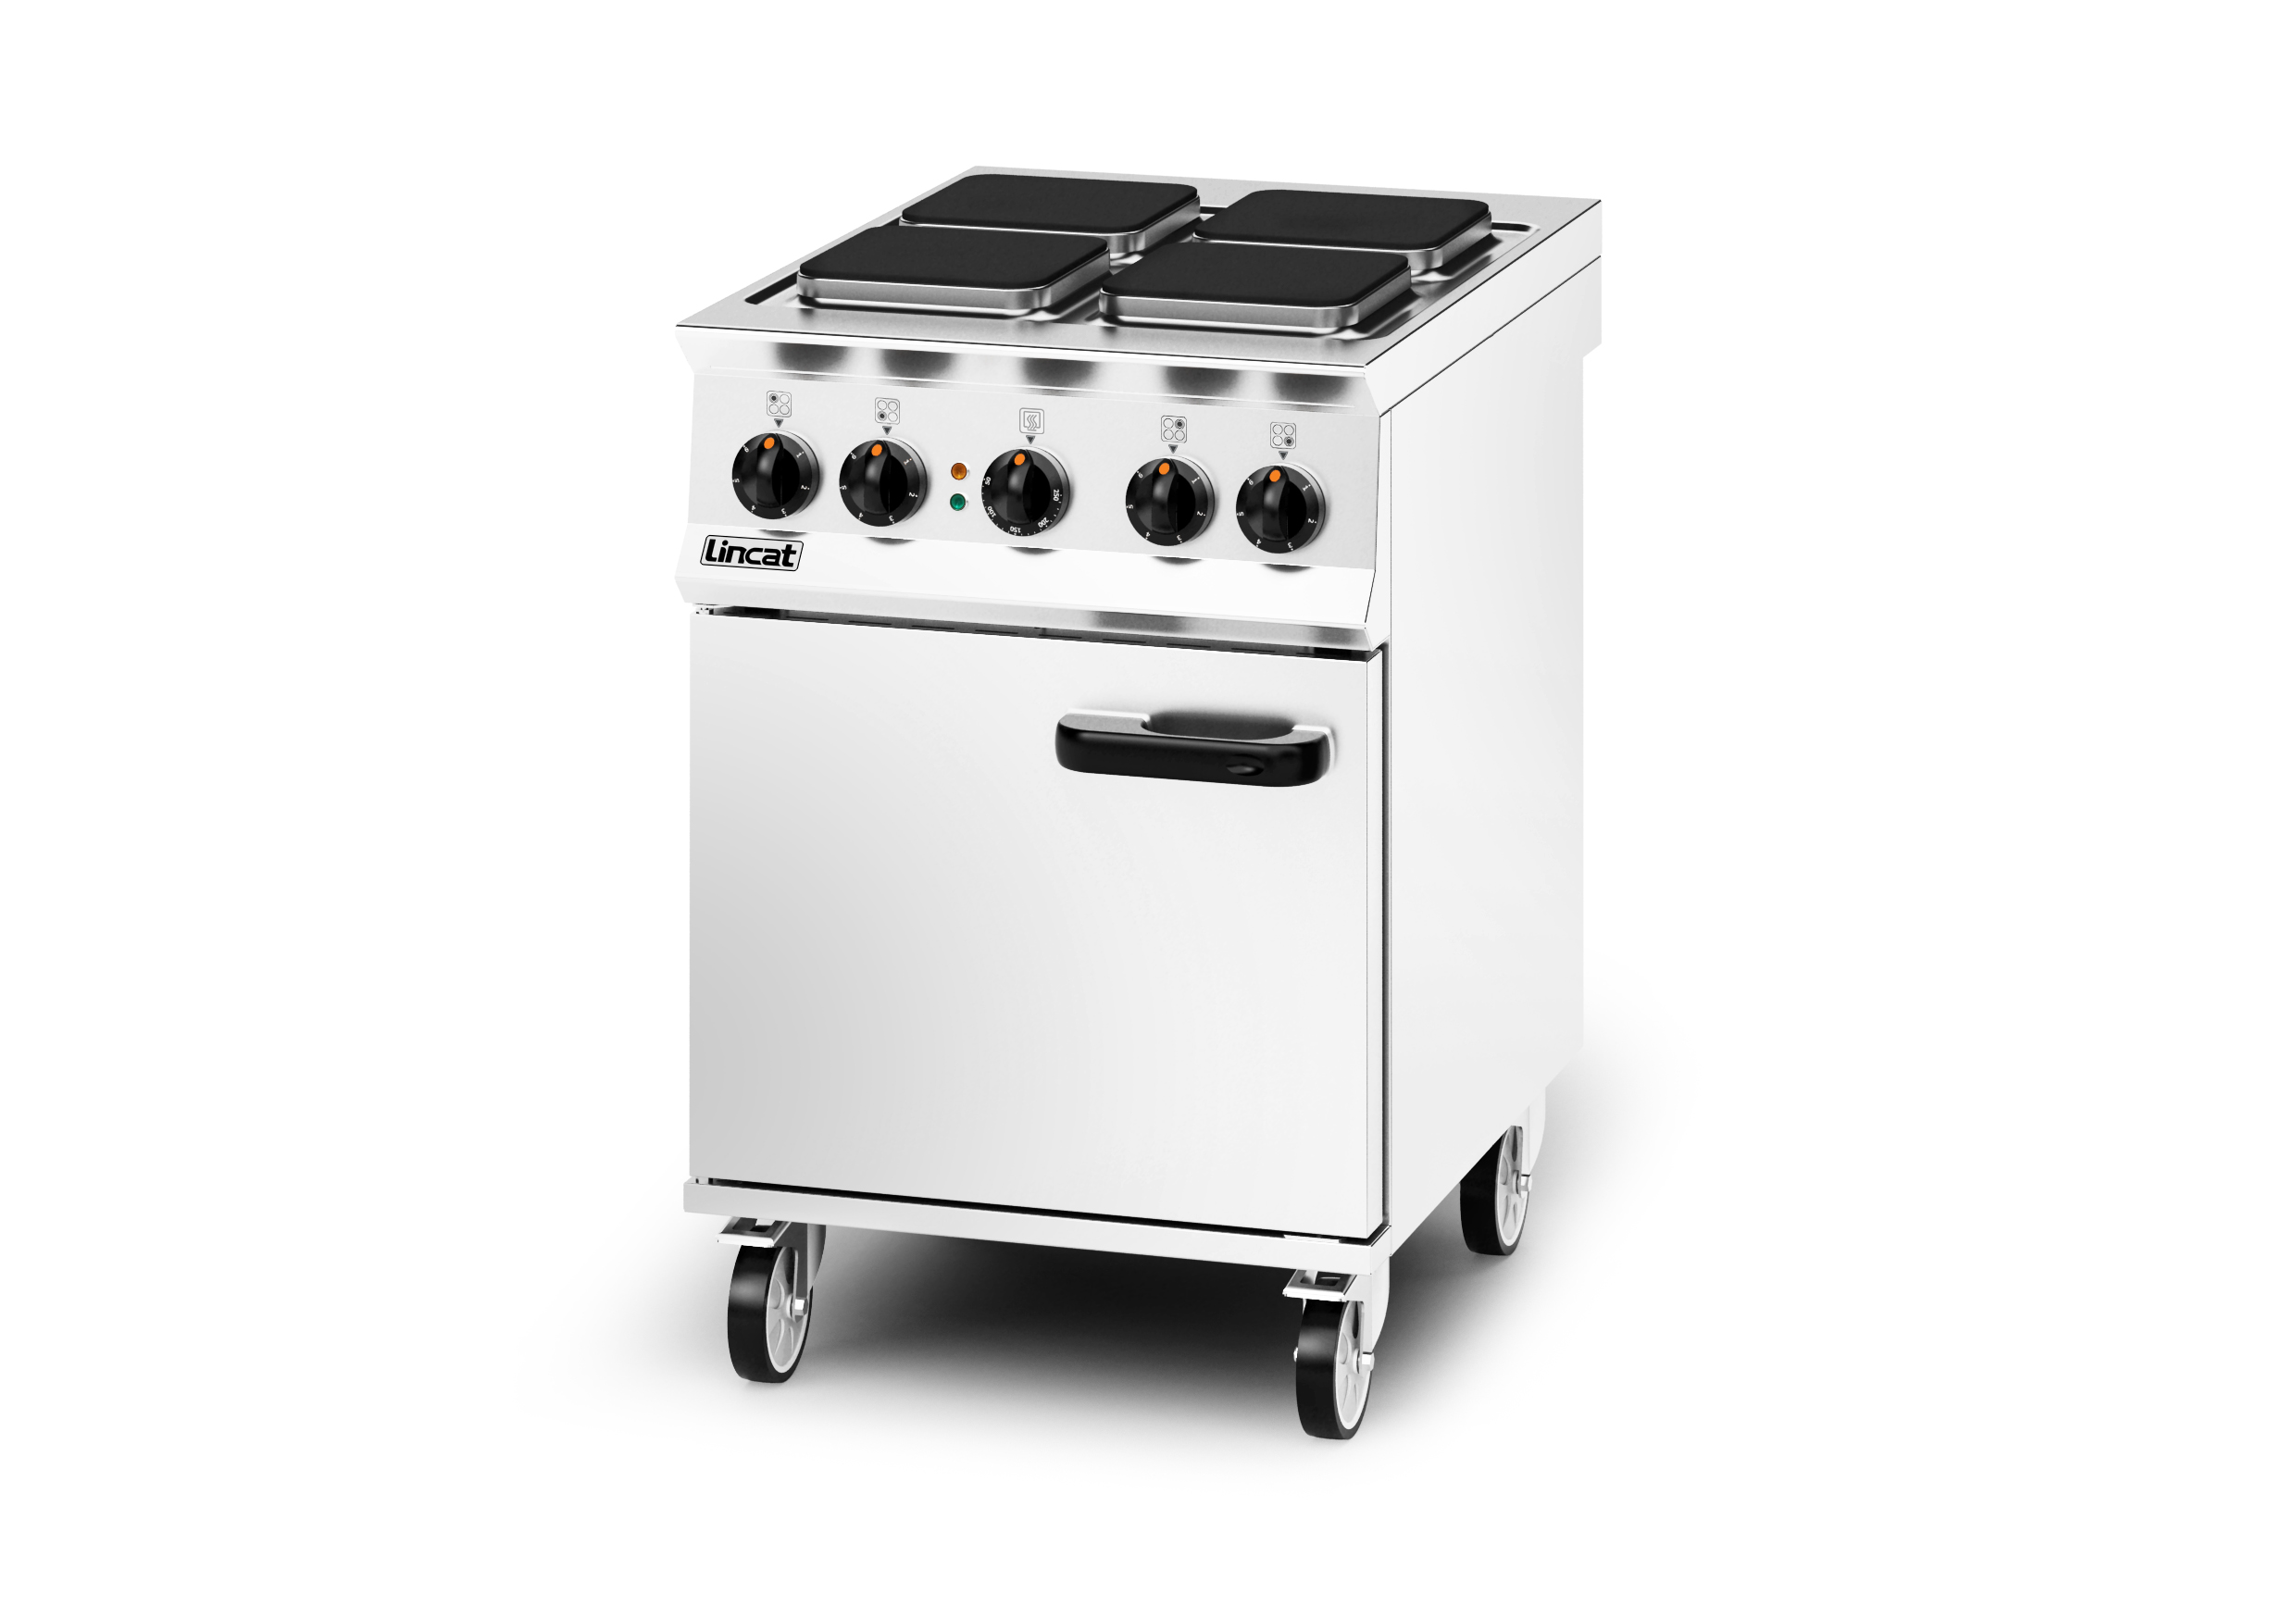 Electric Oven Catering ~ Electric archives reliance catering equipment